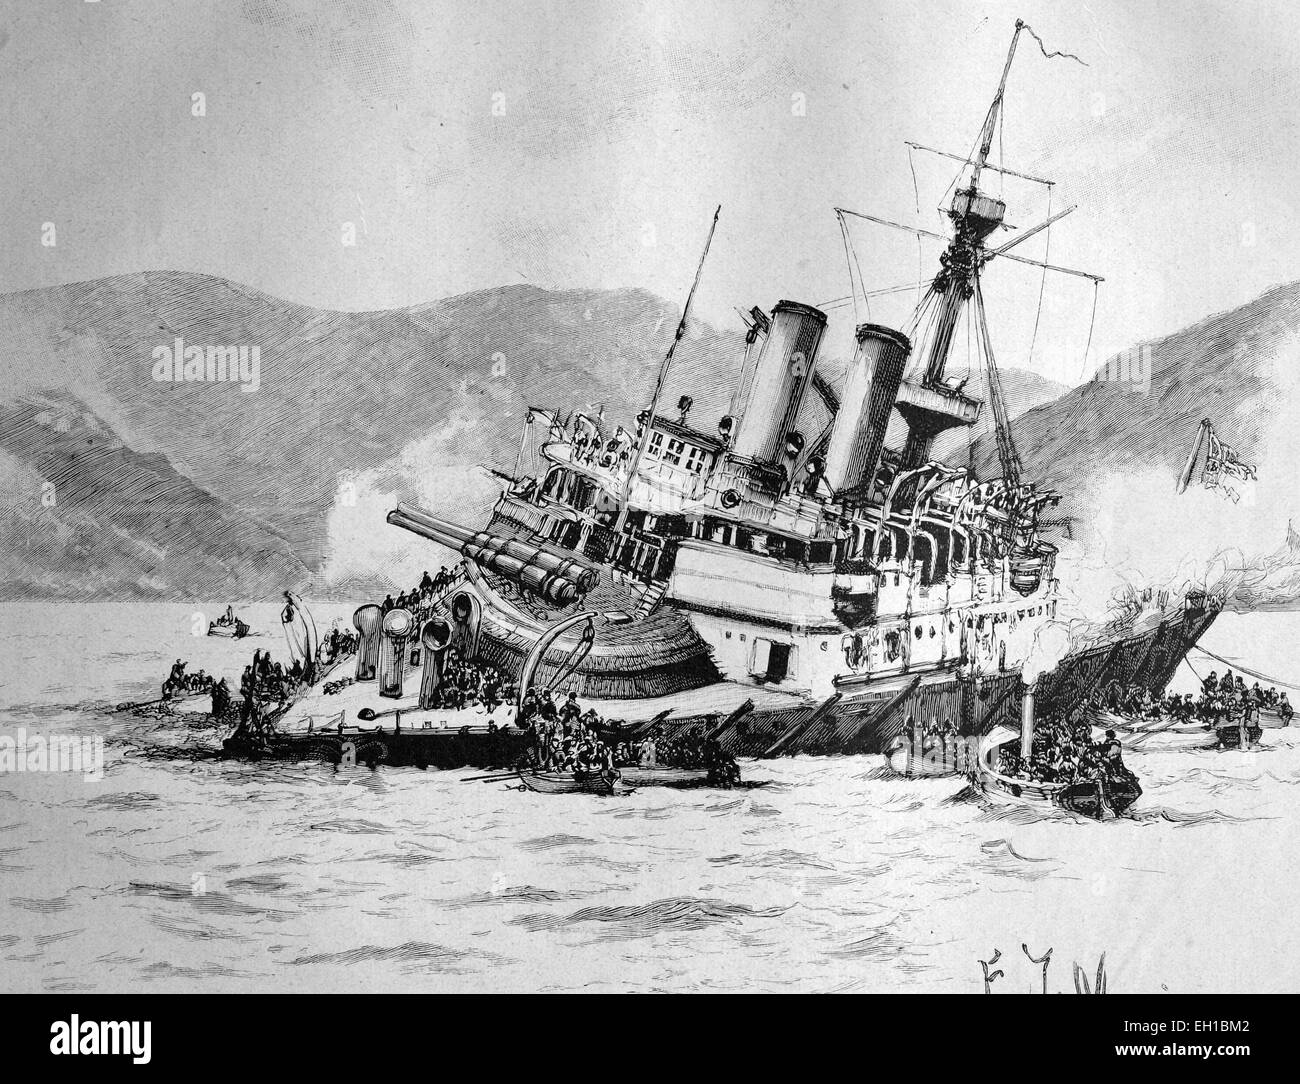 Shipwreck of the British battleship Howe at Ferrol in Spain, historical illustration circa 1893 - Stock Image